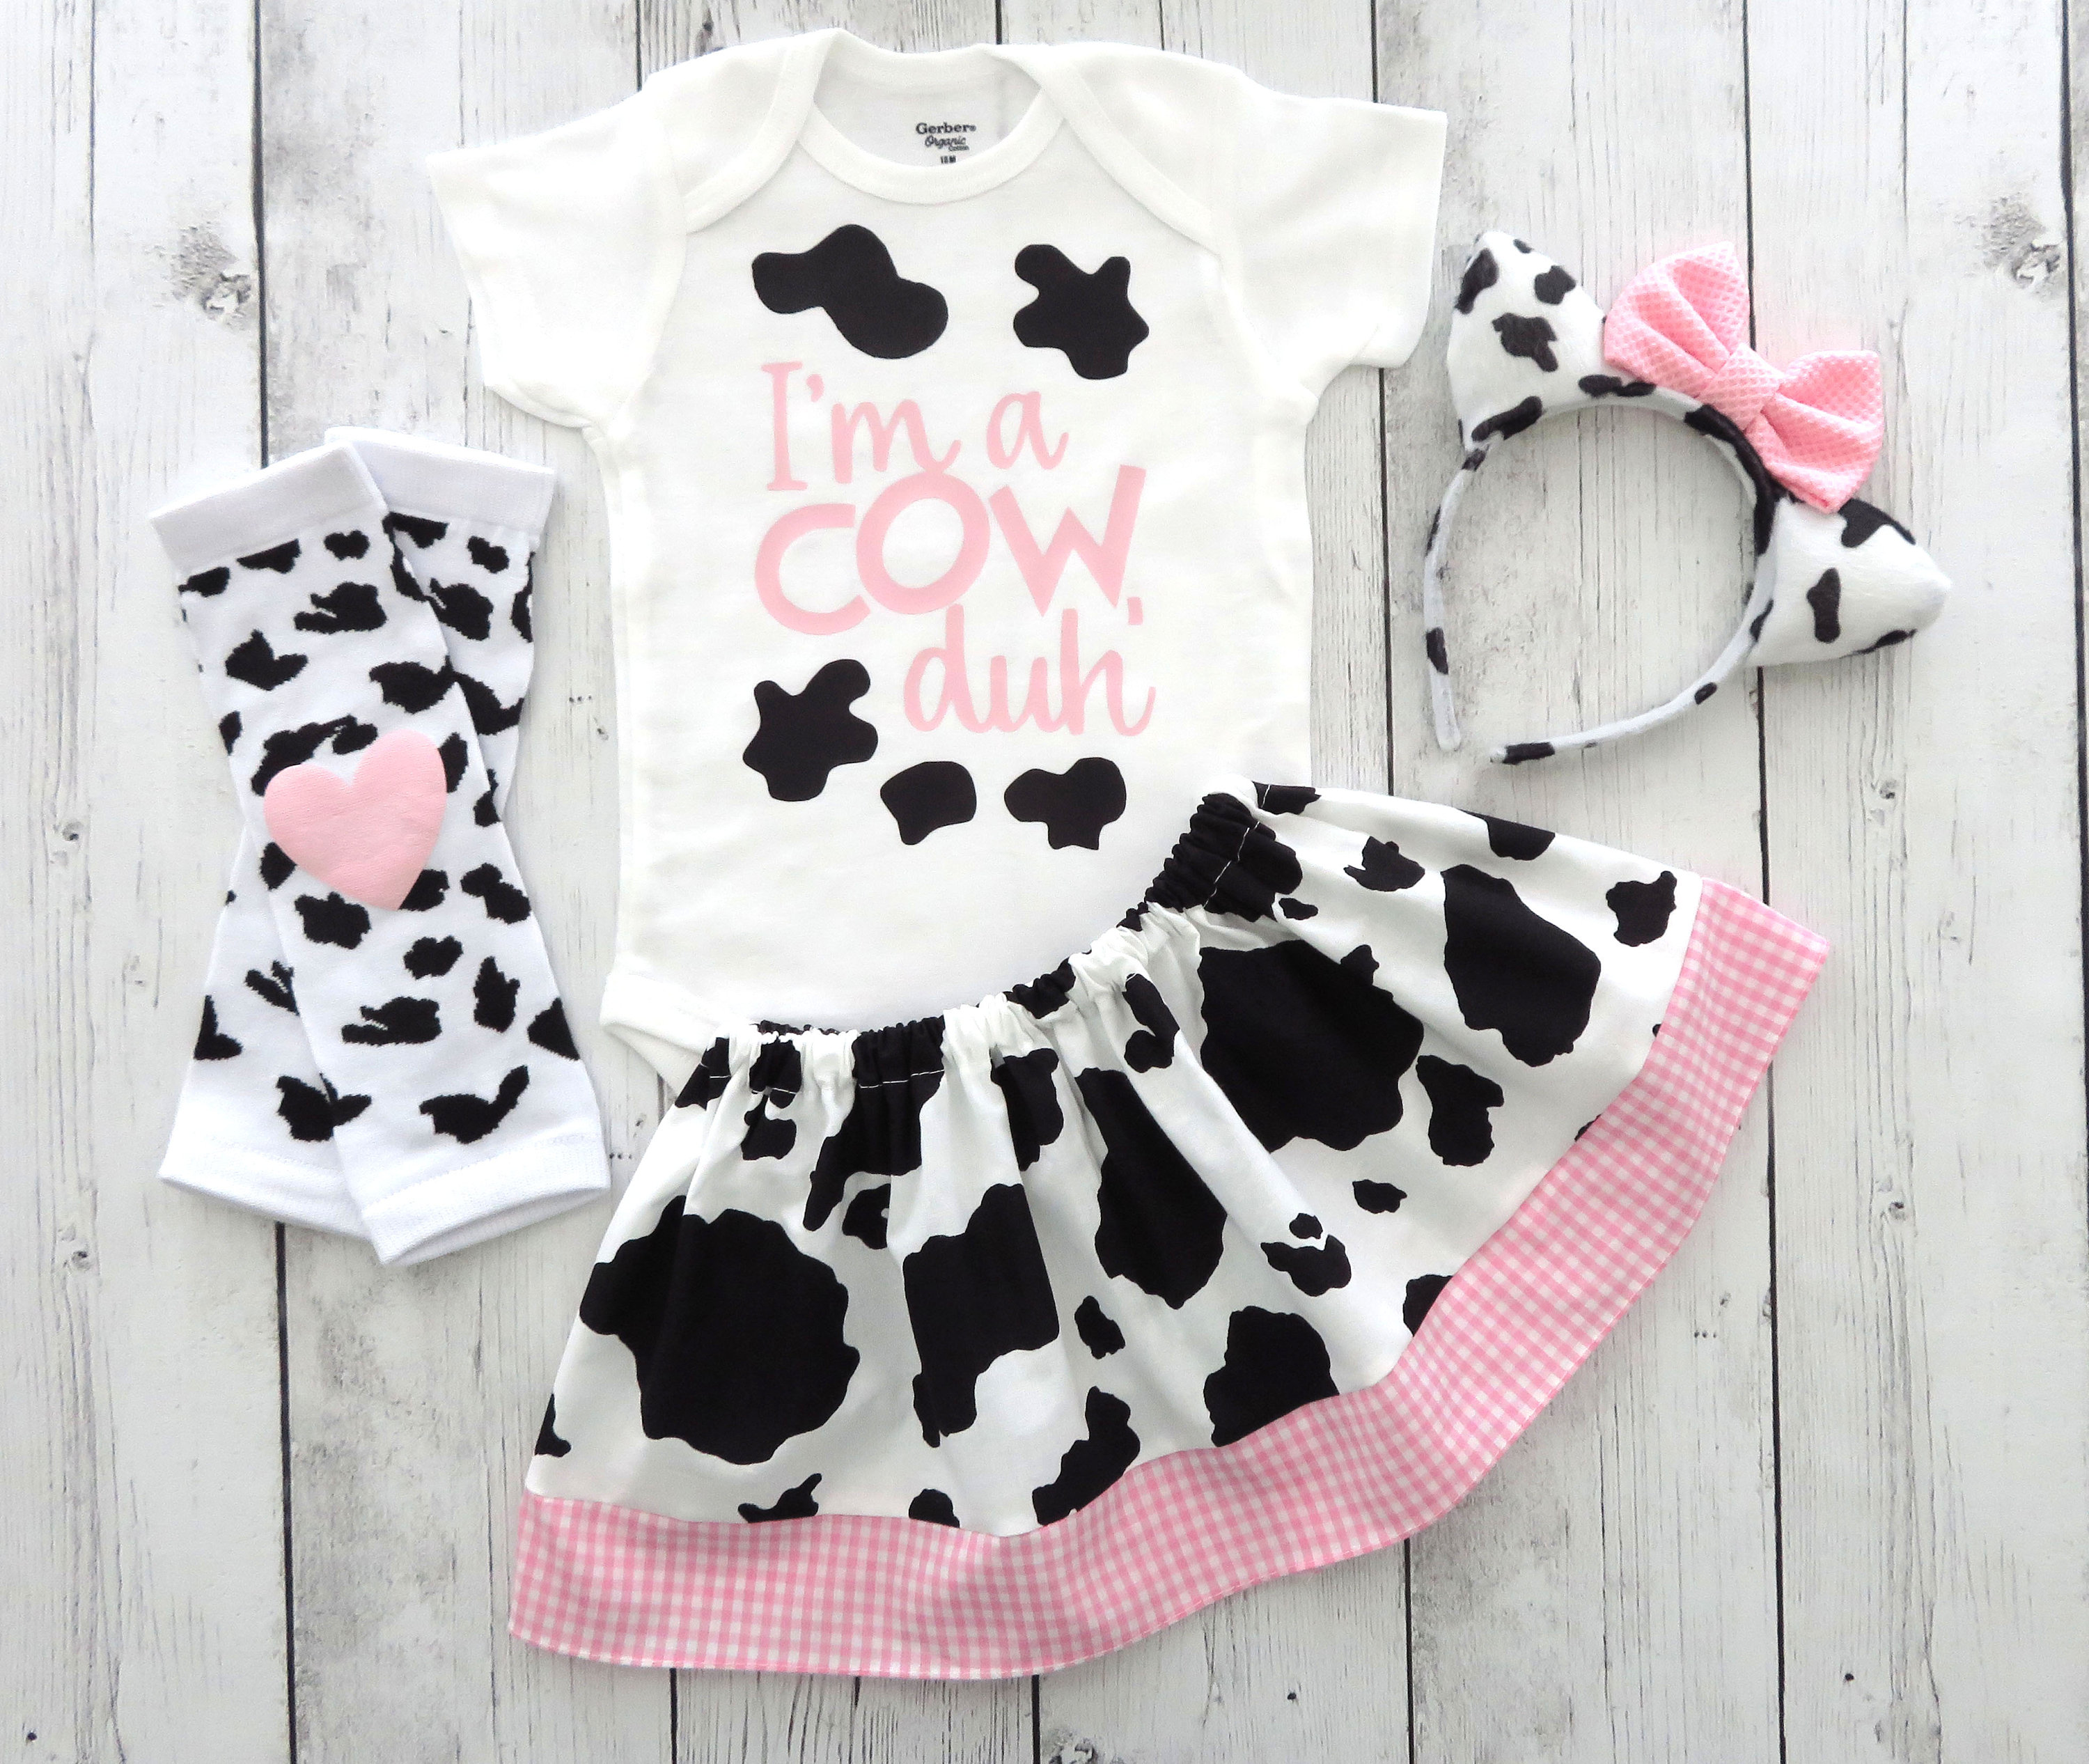 Cow Halloween Costume - baby/toddler halloween costume, first halloween, cow ears headband, toddler halloween costume, cow custume girl